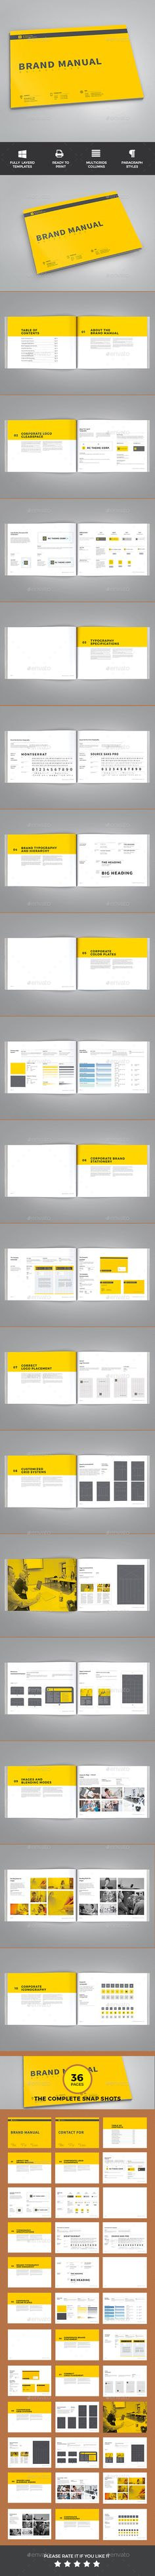 Brand Manual Template InDesign INDD #design Download: http://graphicriver.net/item/brand-manual/14229420?ref=ksioks